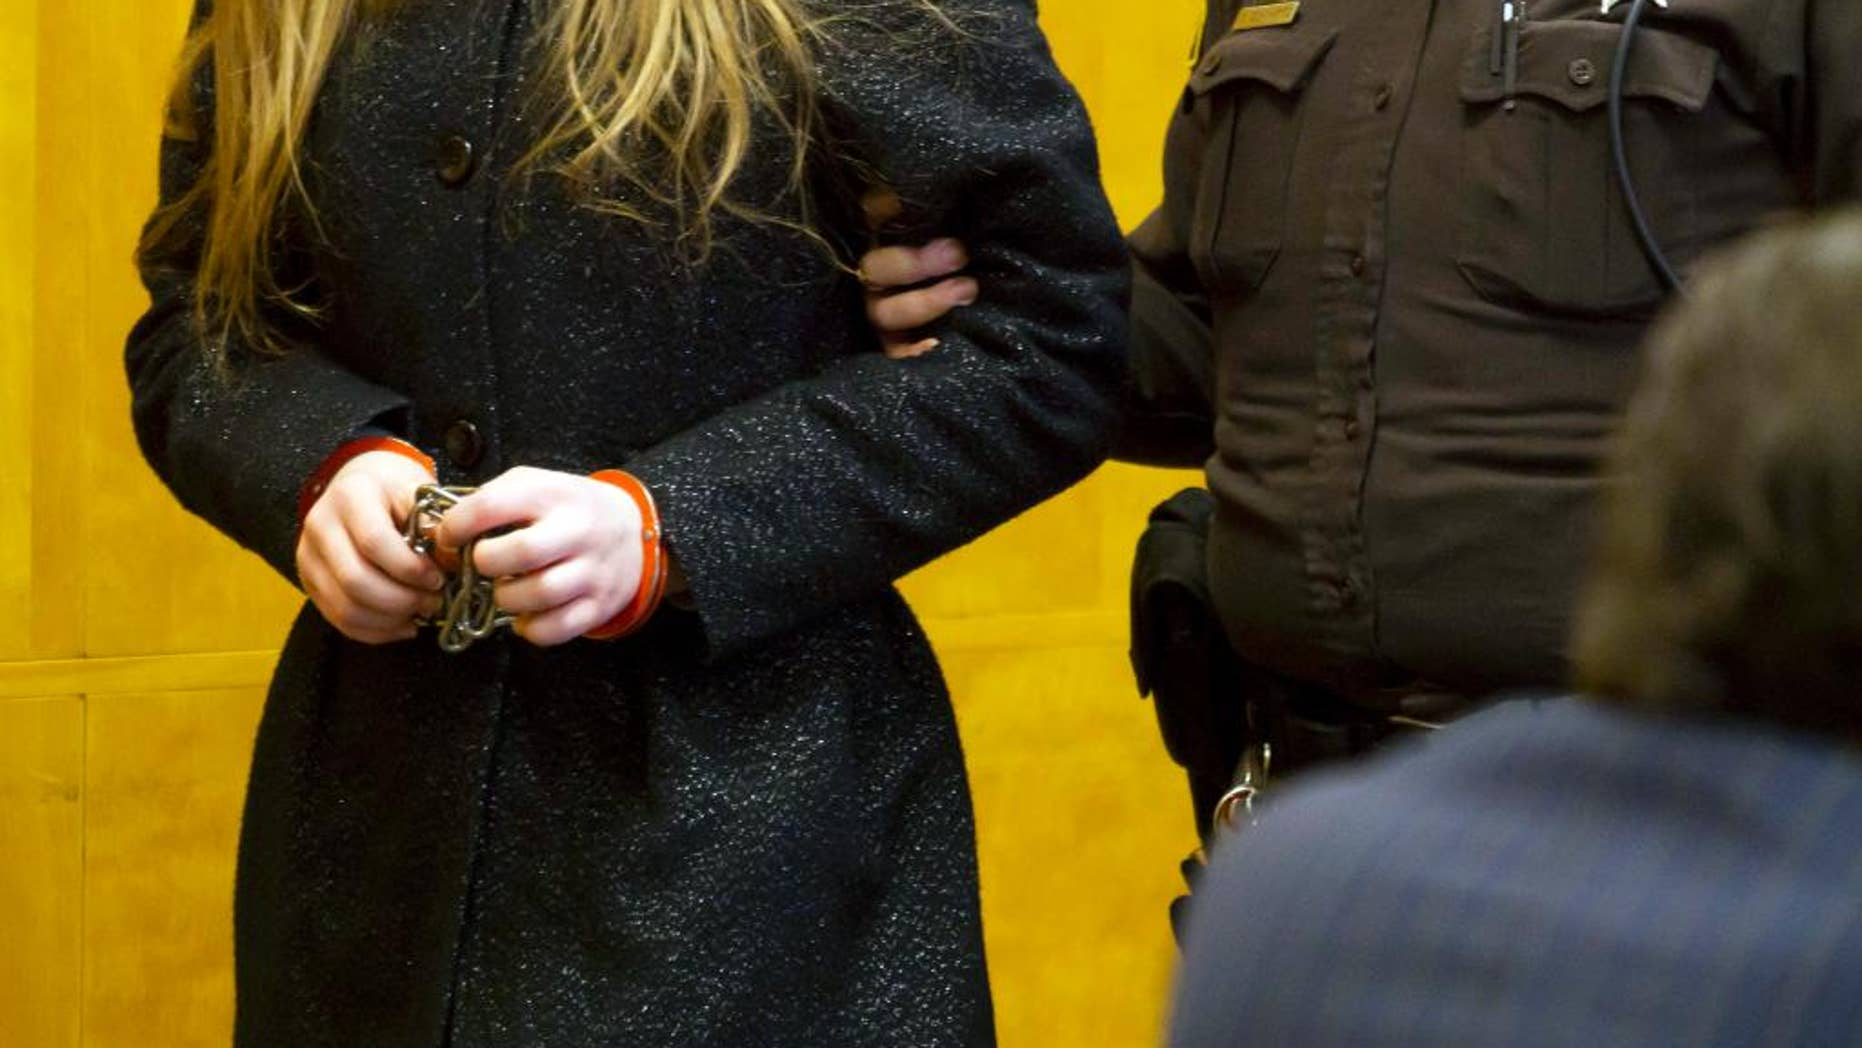 One of two 12-year-old girls accused of stabbing a classmate to please the fictional character Slender Man is led into a courtroom at the Waukesha County Courthouse in Waukesha, Wis. Tuesday, Nov. 18, 2014. Her attorney challenged a doctor's report that said she was competent to stand trial. A competency hearing was scheduled for Dec. 18, the same day as a competency hearing for the other girl accused in the case. (AP Photo/Waukesha Freeman, Charles Auer, Pool)